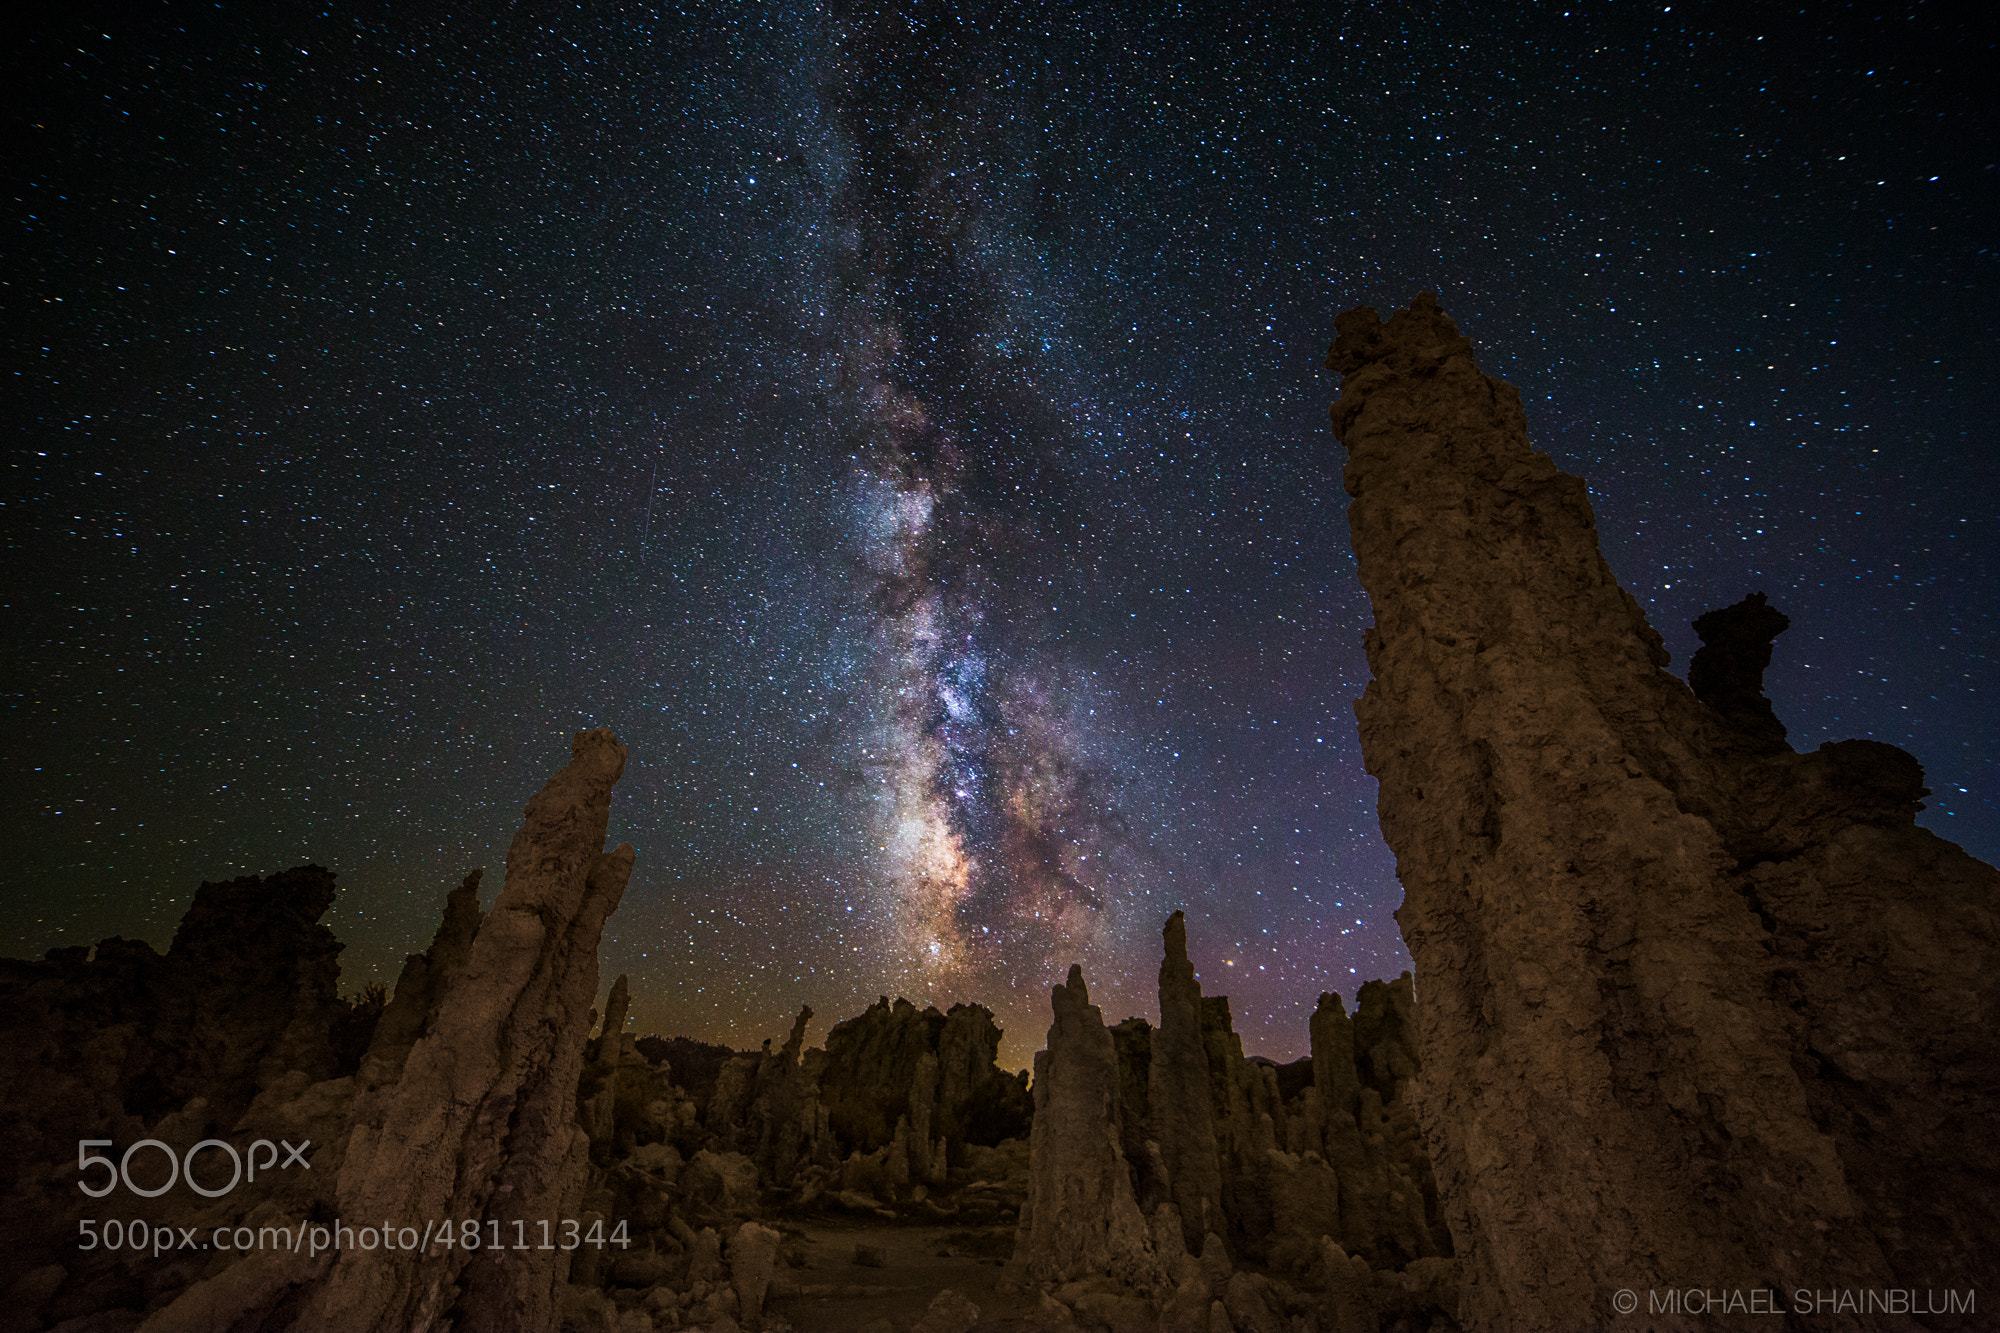 Photograph Natural Ruins by Michael Shainblum on 500px